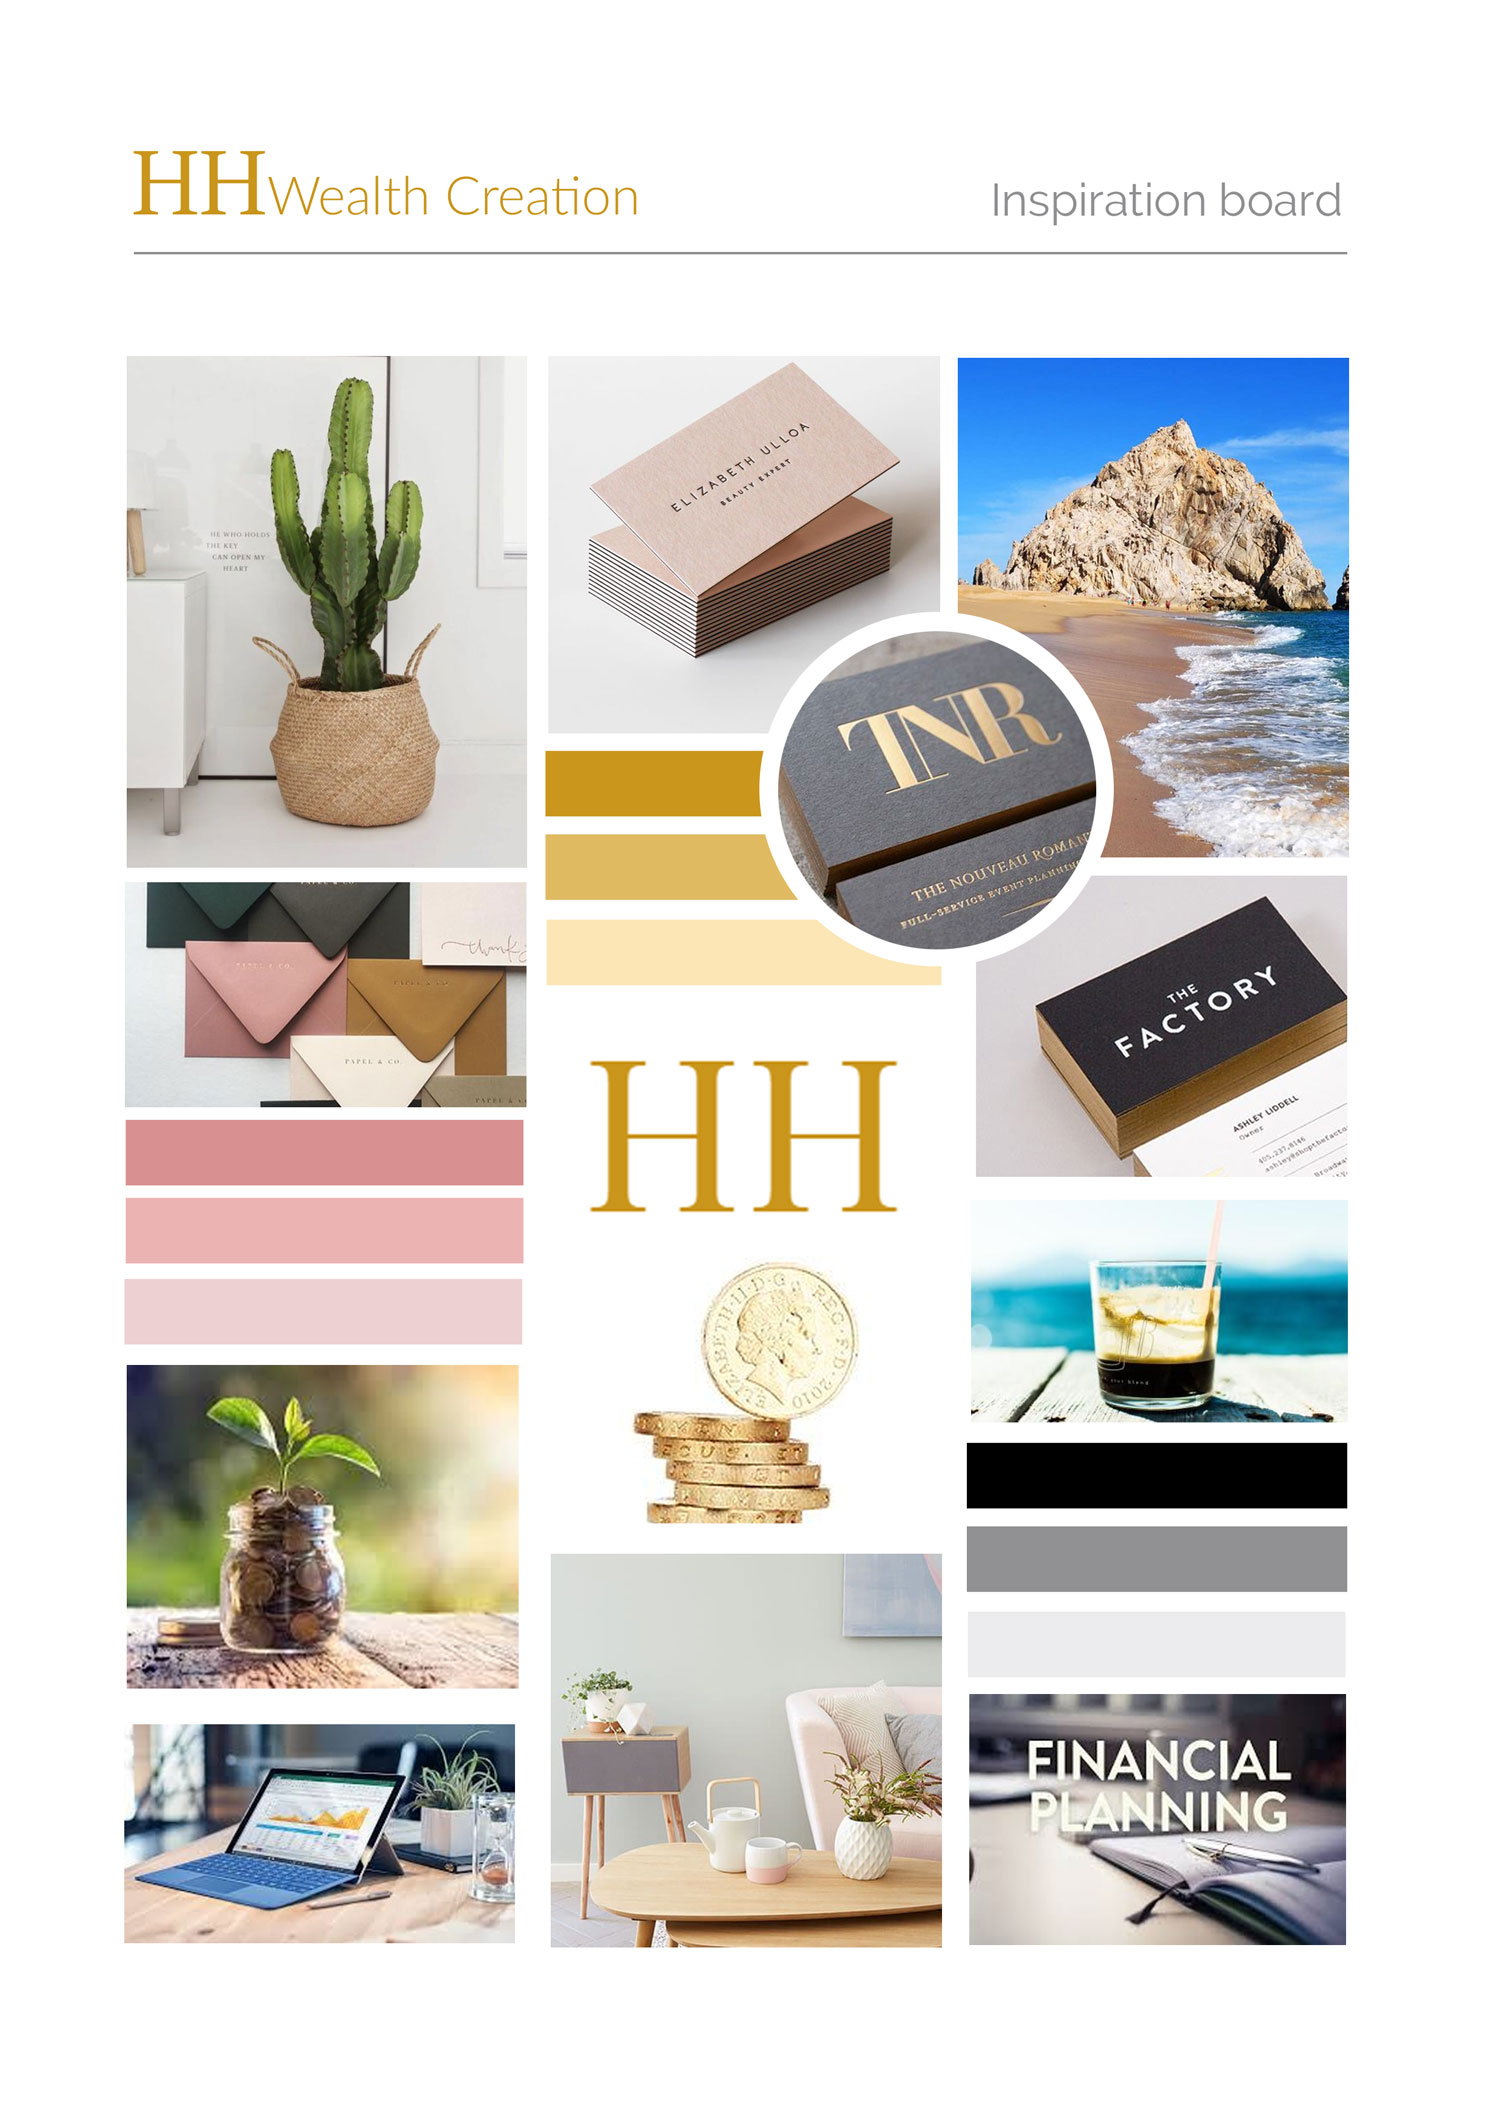 Inspiration board for HH Wealth Creation